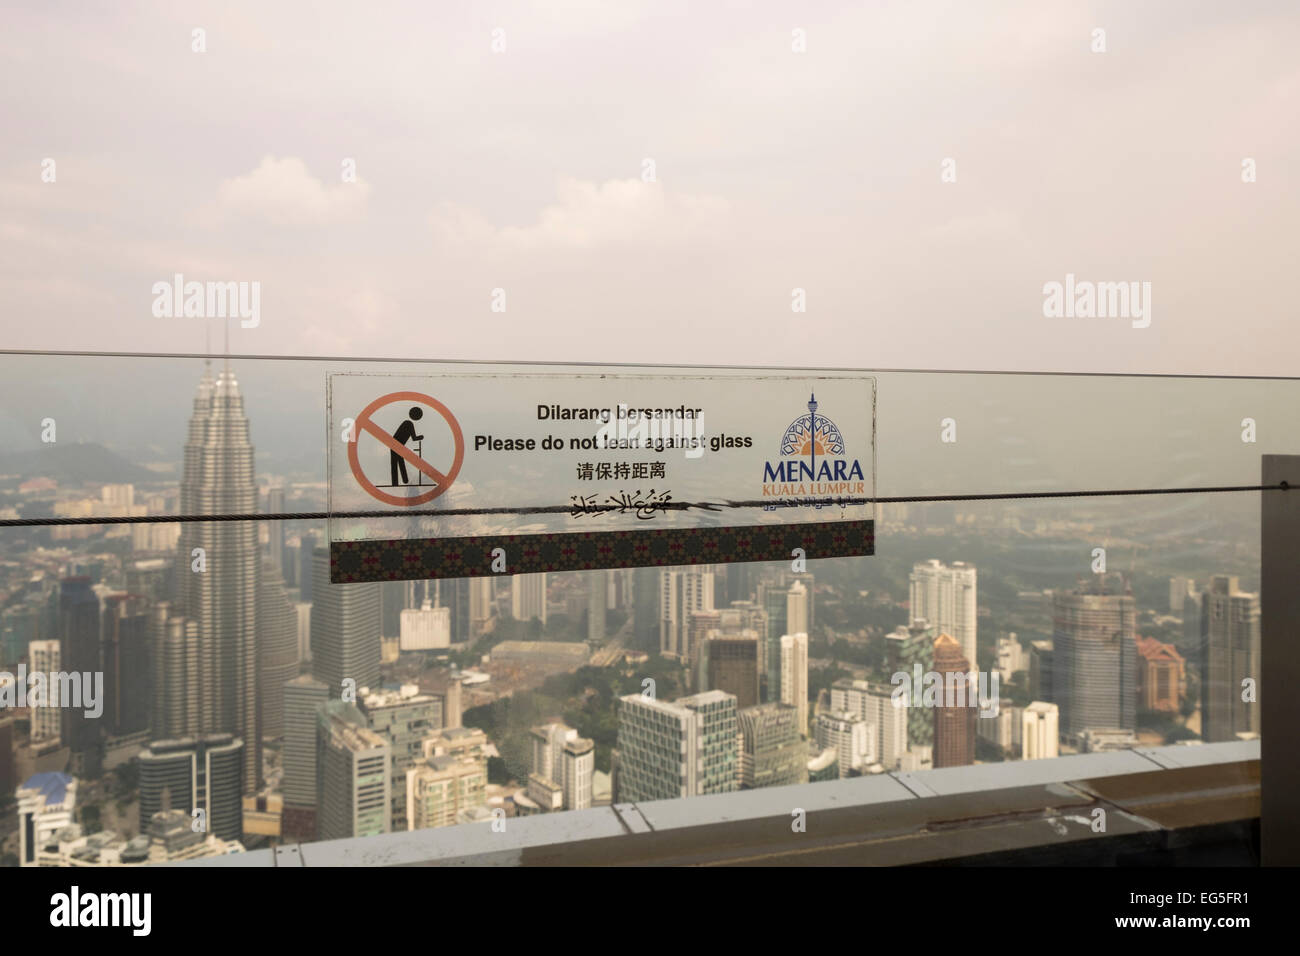 View from the observation deck on the KL tower, Kuala Lumpur, Malaysia, on a day with high humidity and hazy skies. - Stock Image